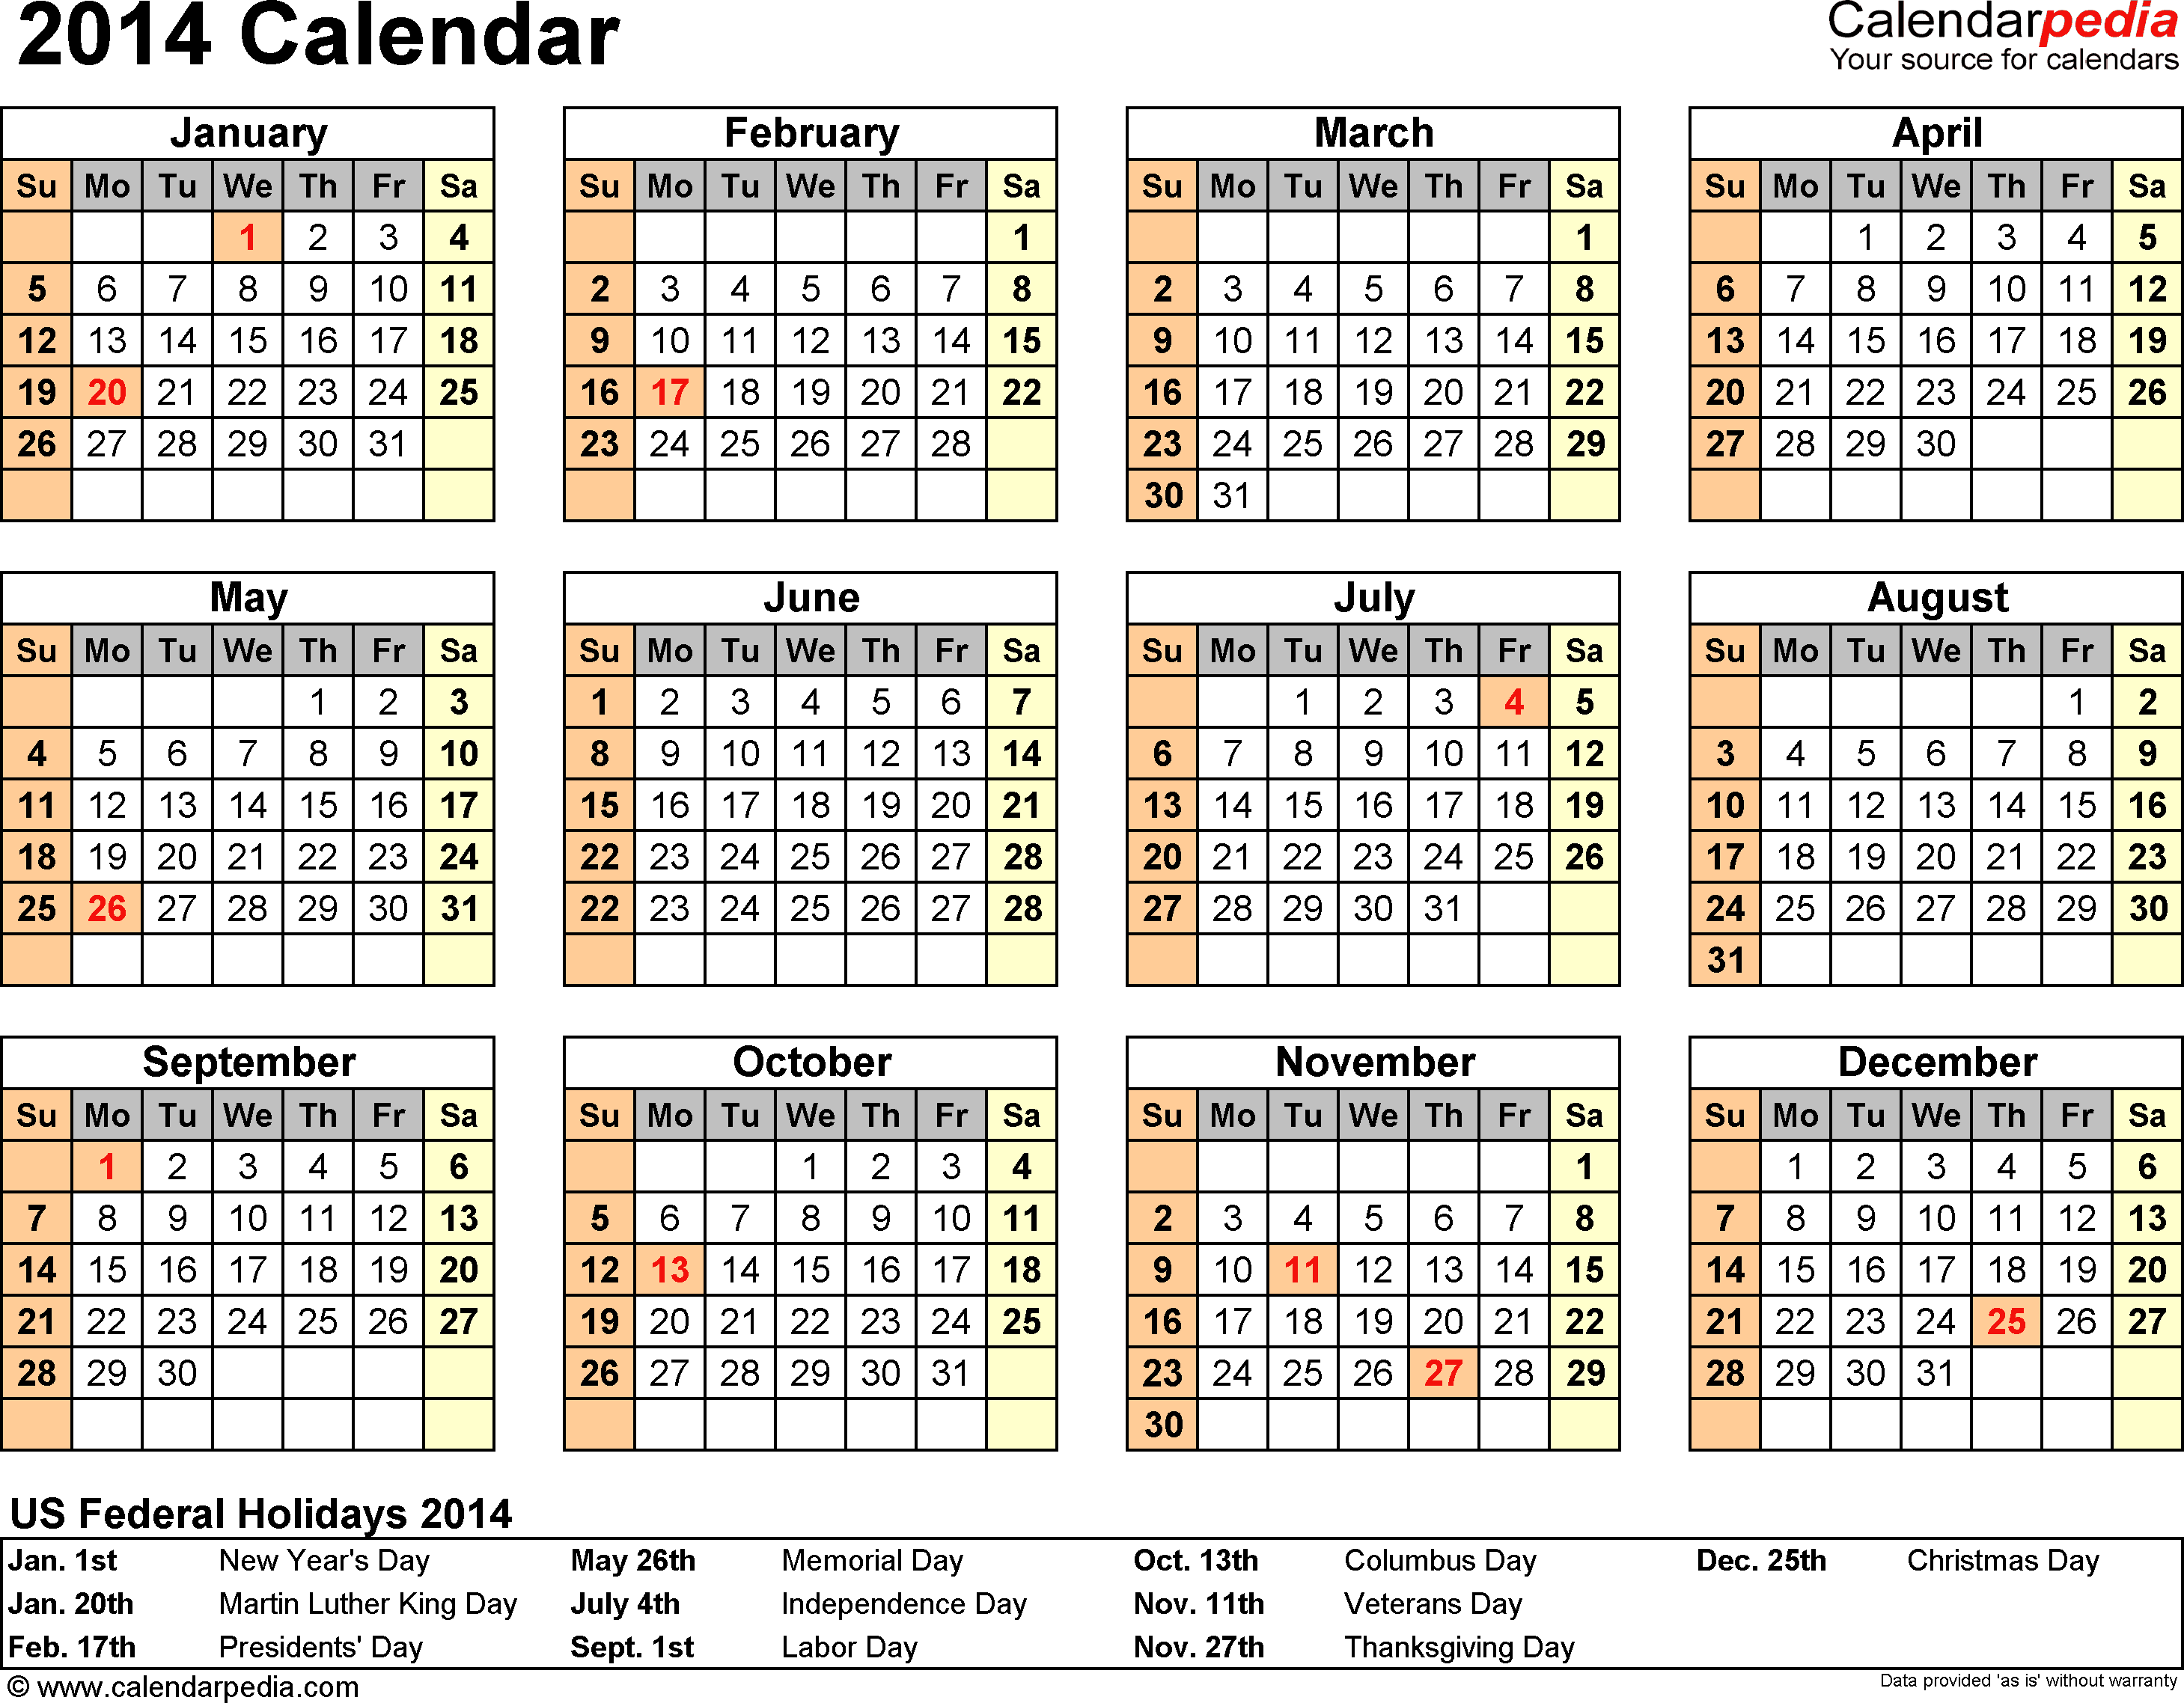 Template 8: 2014 Calendar for Excel, year at a glance, 1 page